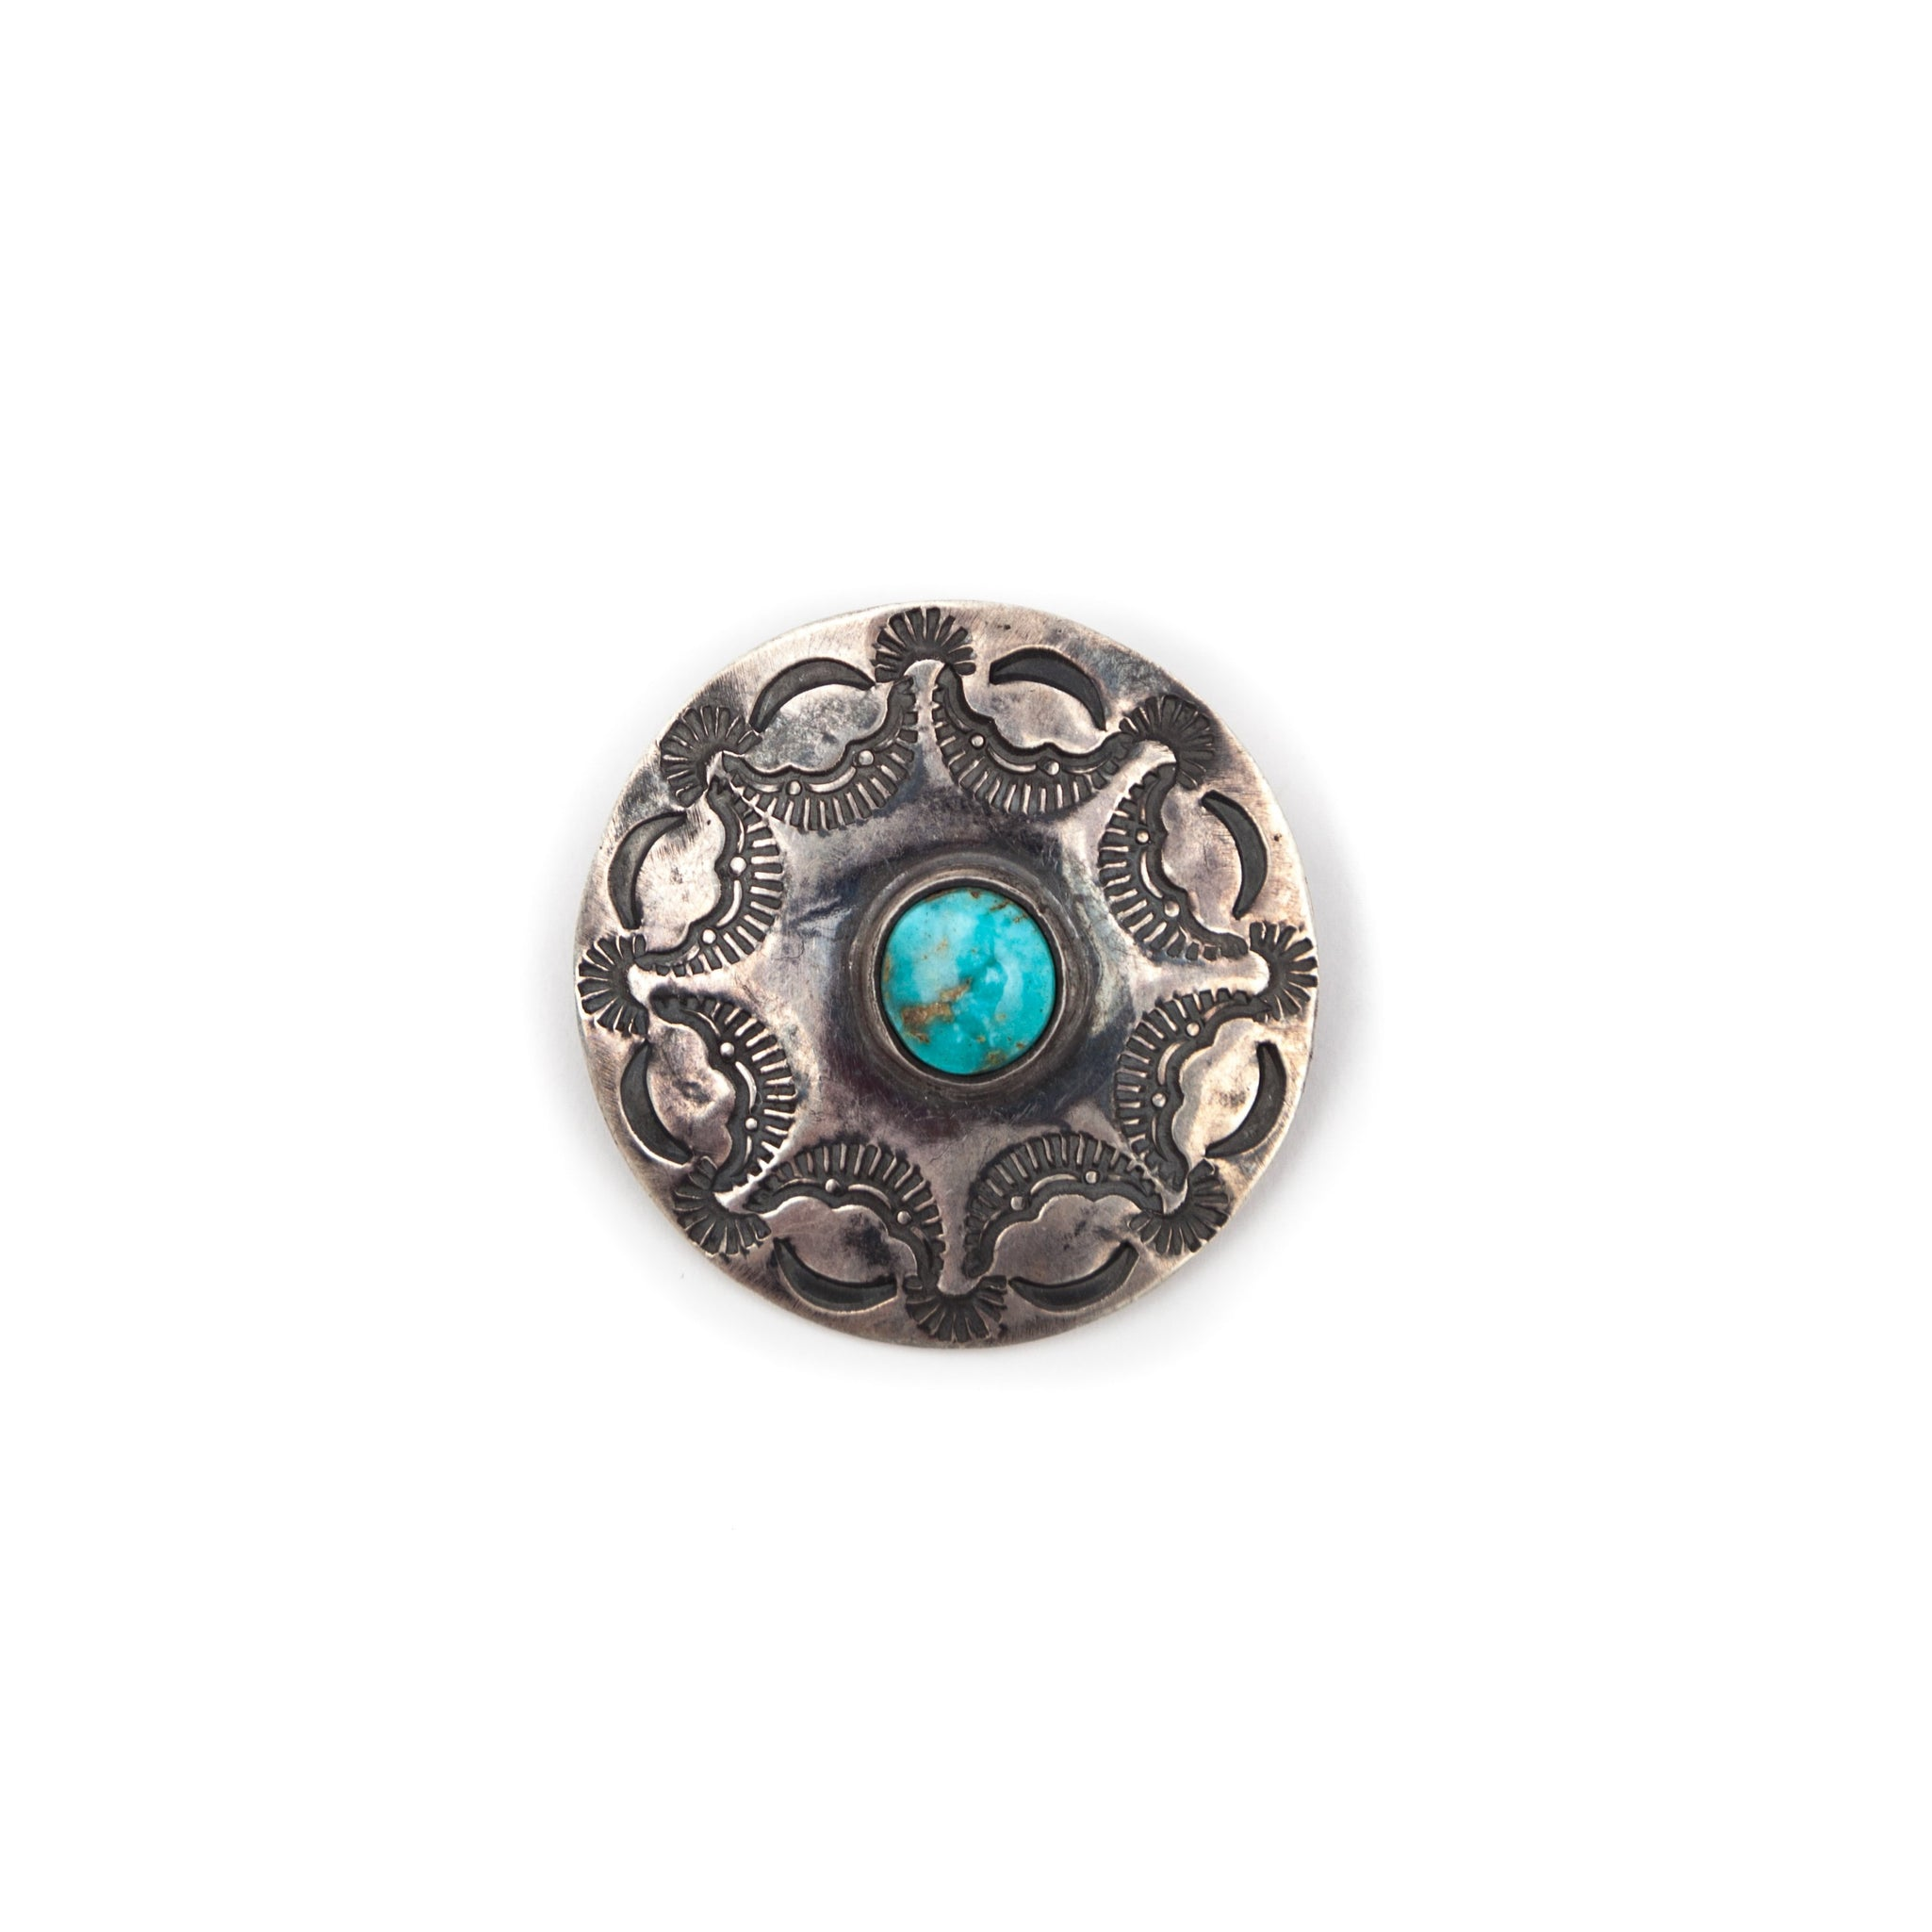 Silver Brooch & Turquoise Stone #1